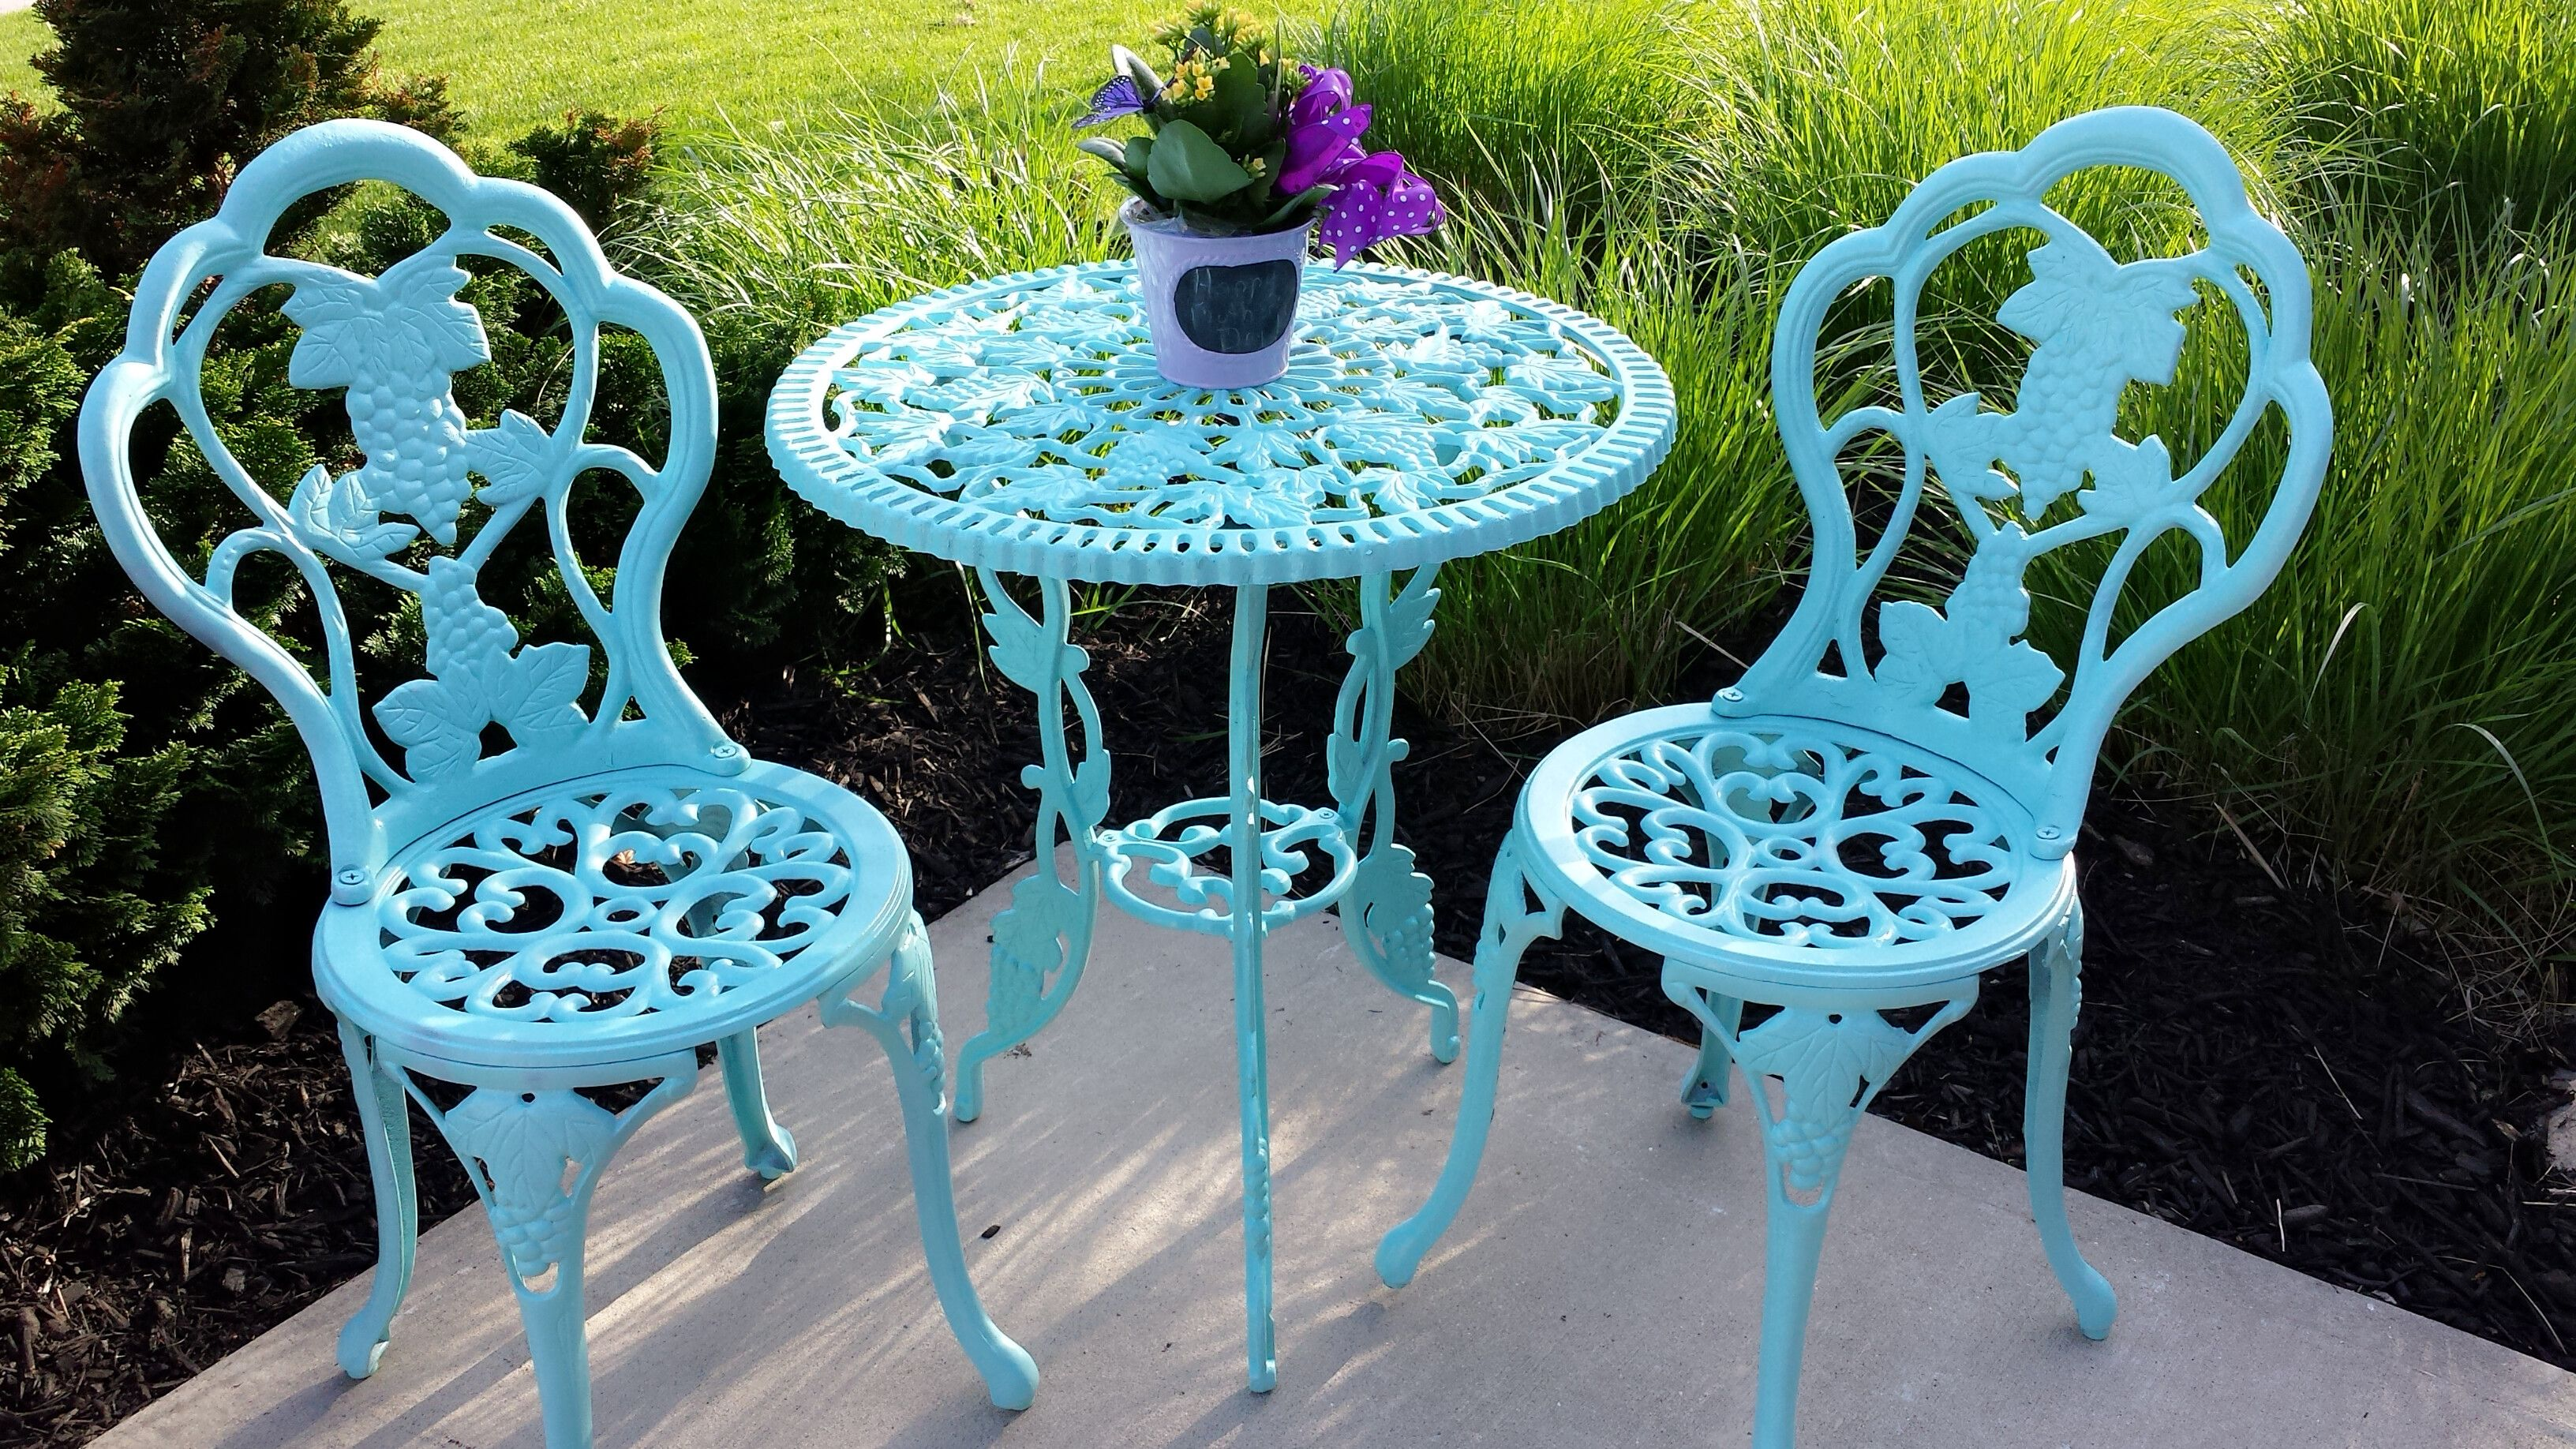 Diy Painted Bistro Set How To Refinish Wrought Iron Use Wire Brushes Get Old Paint Off Turquoise